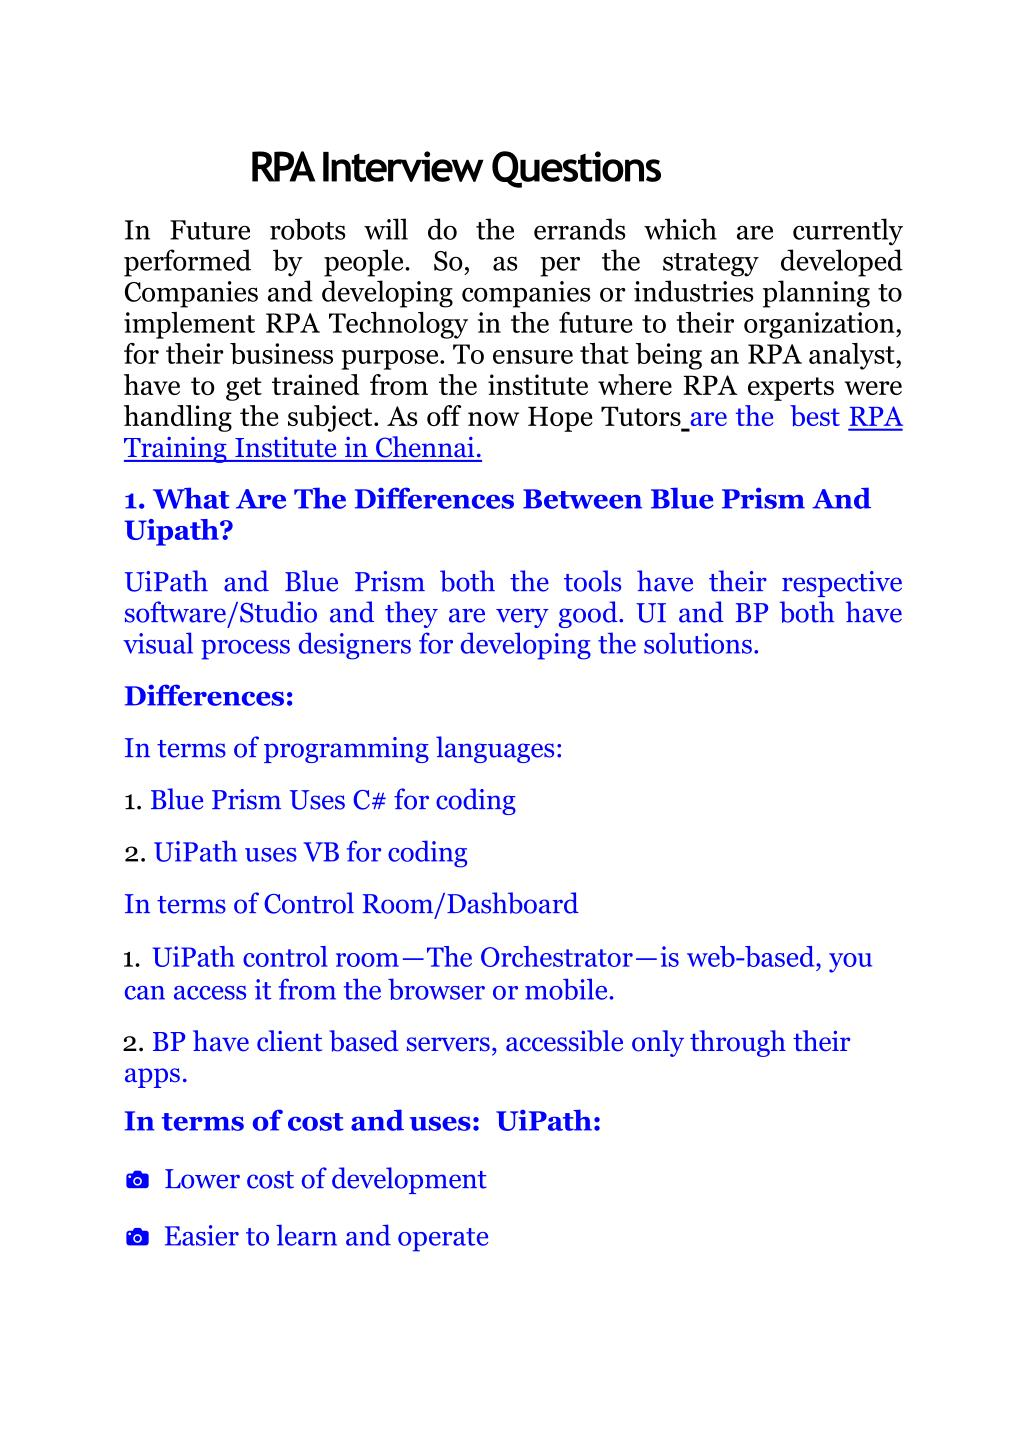 PPT - RPA Interview Questions PowerPoint Presentation - ID